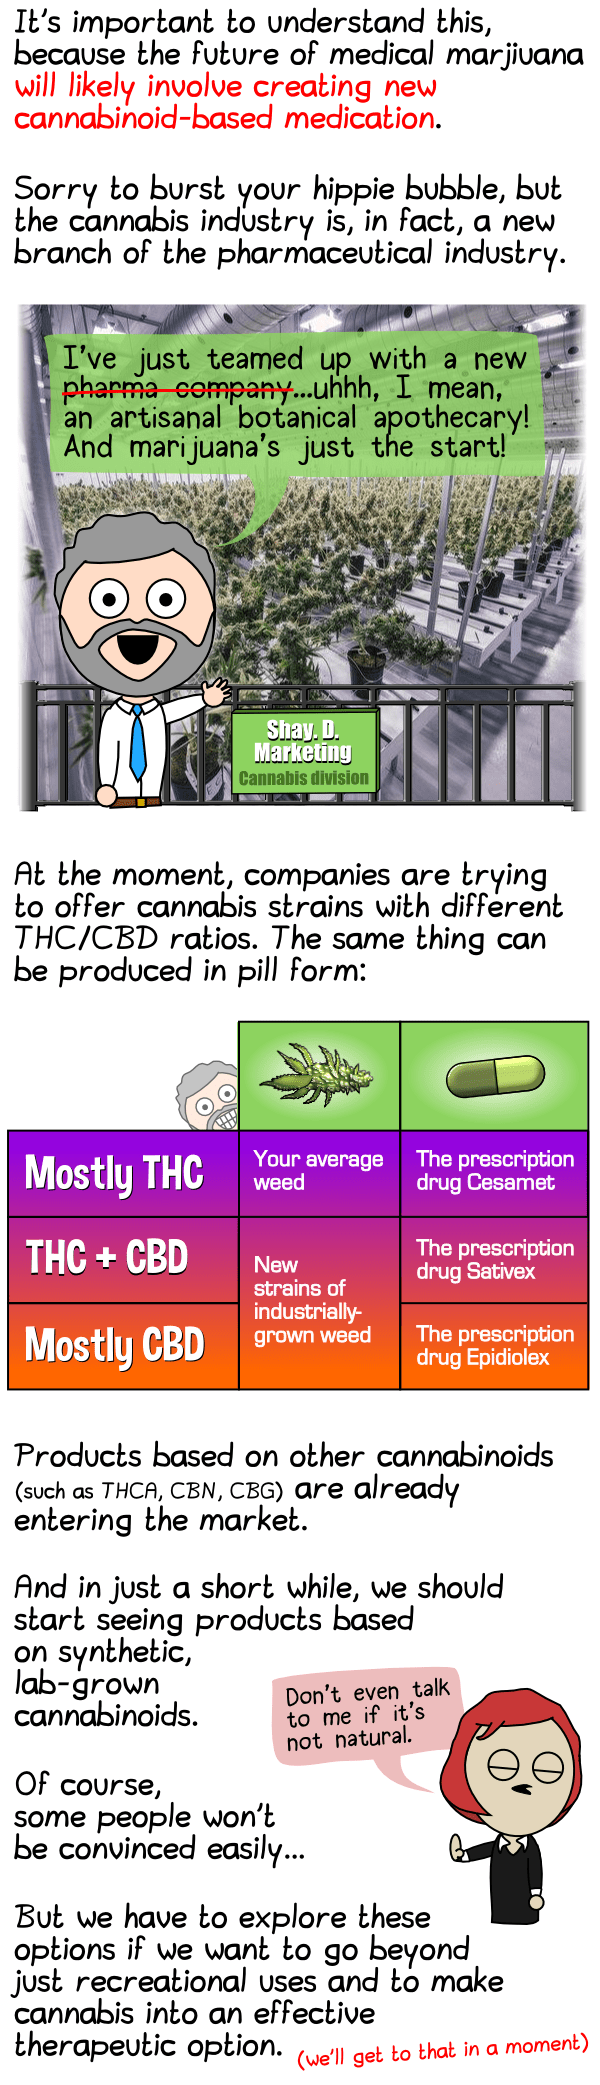 THC CBD prescription strains